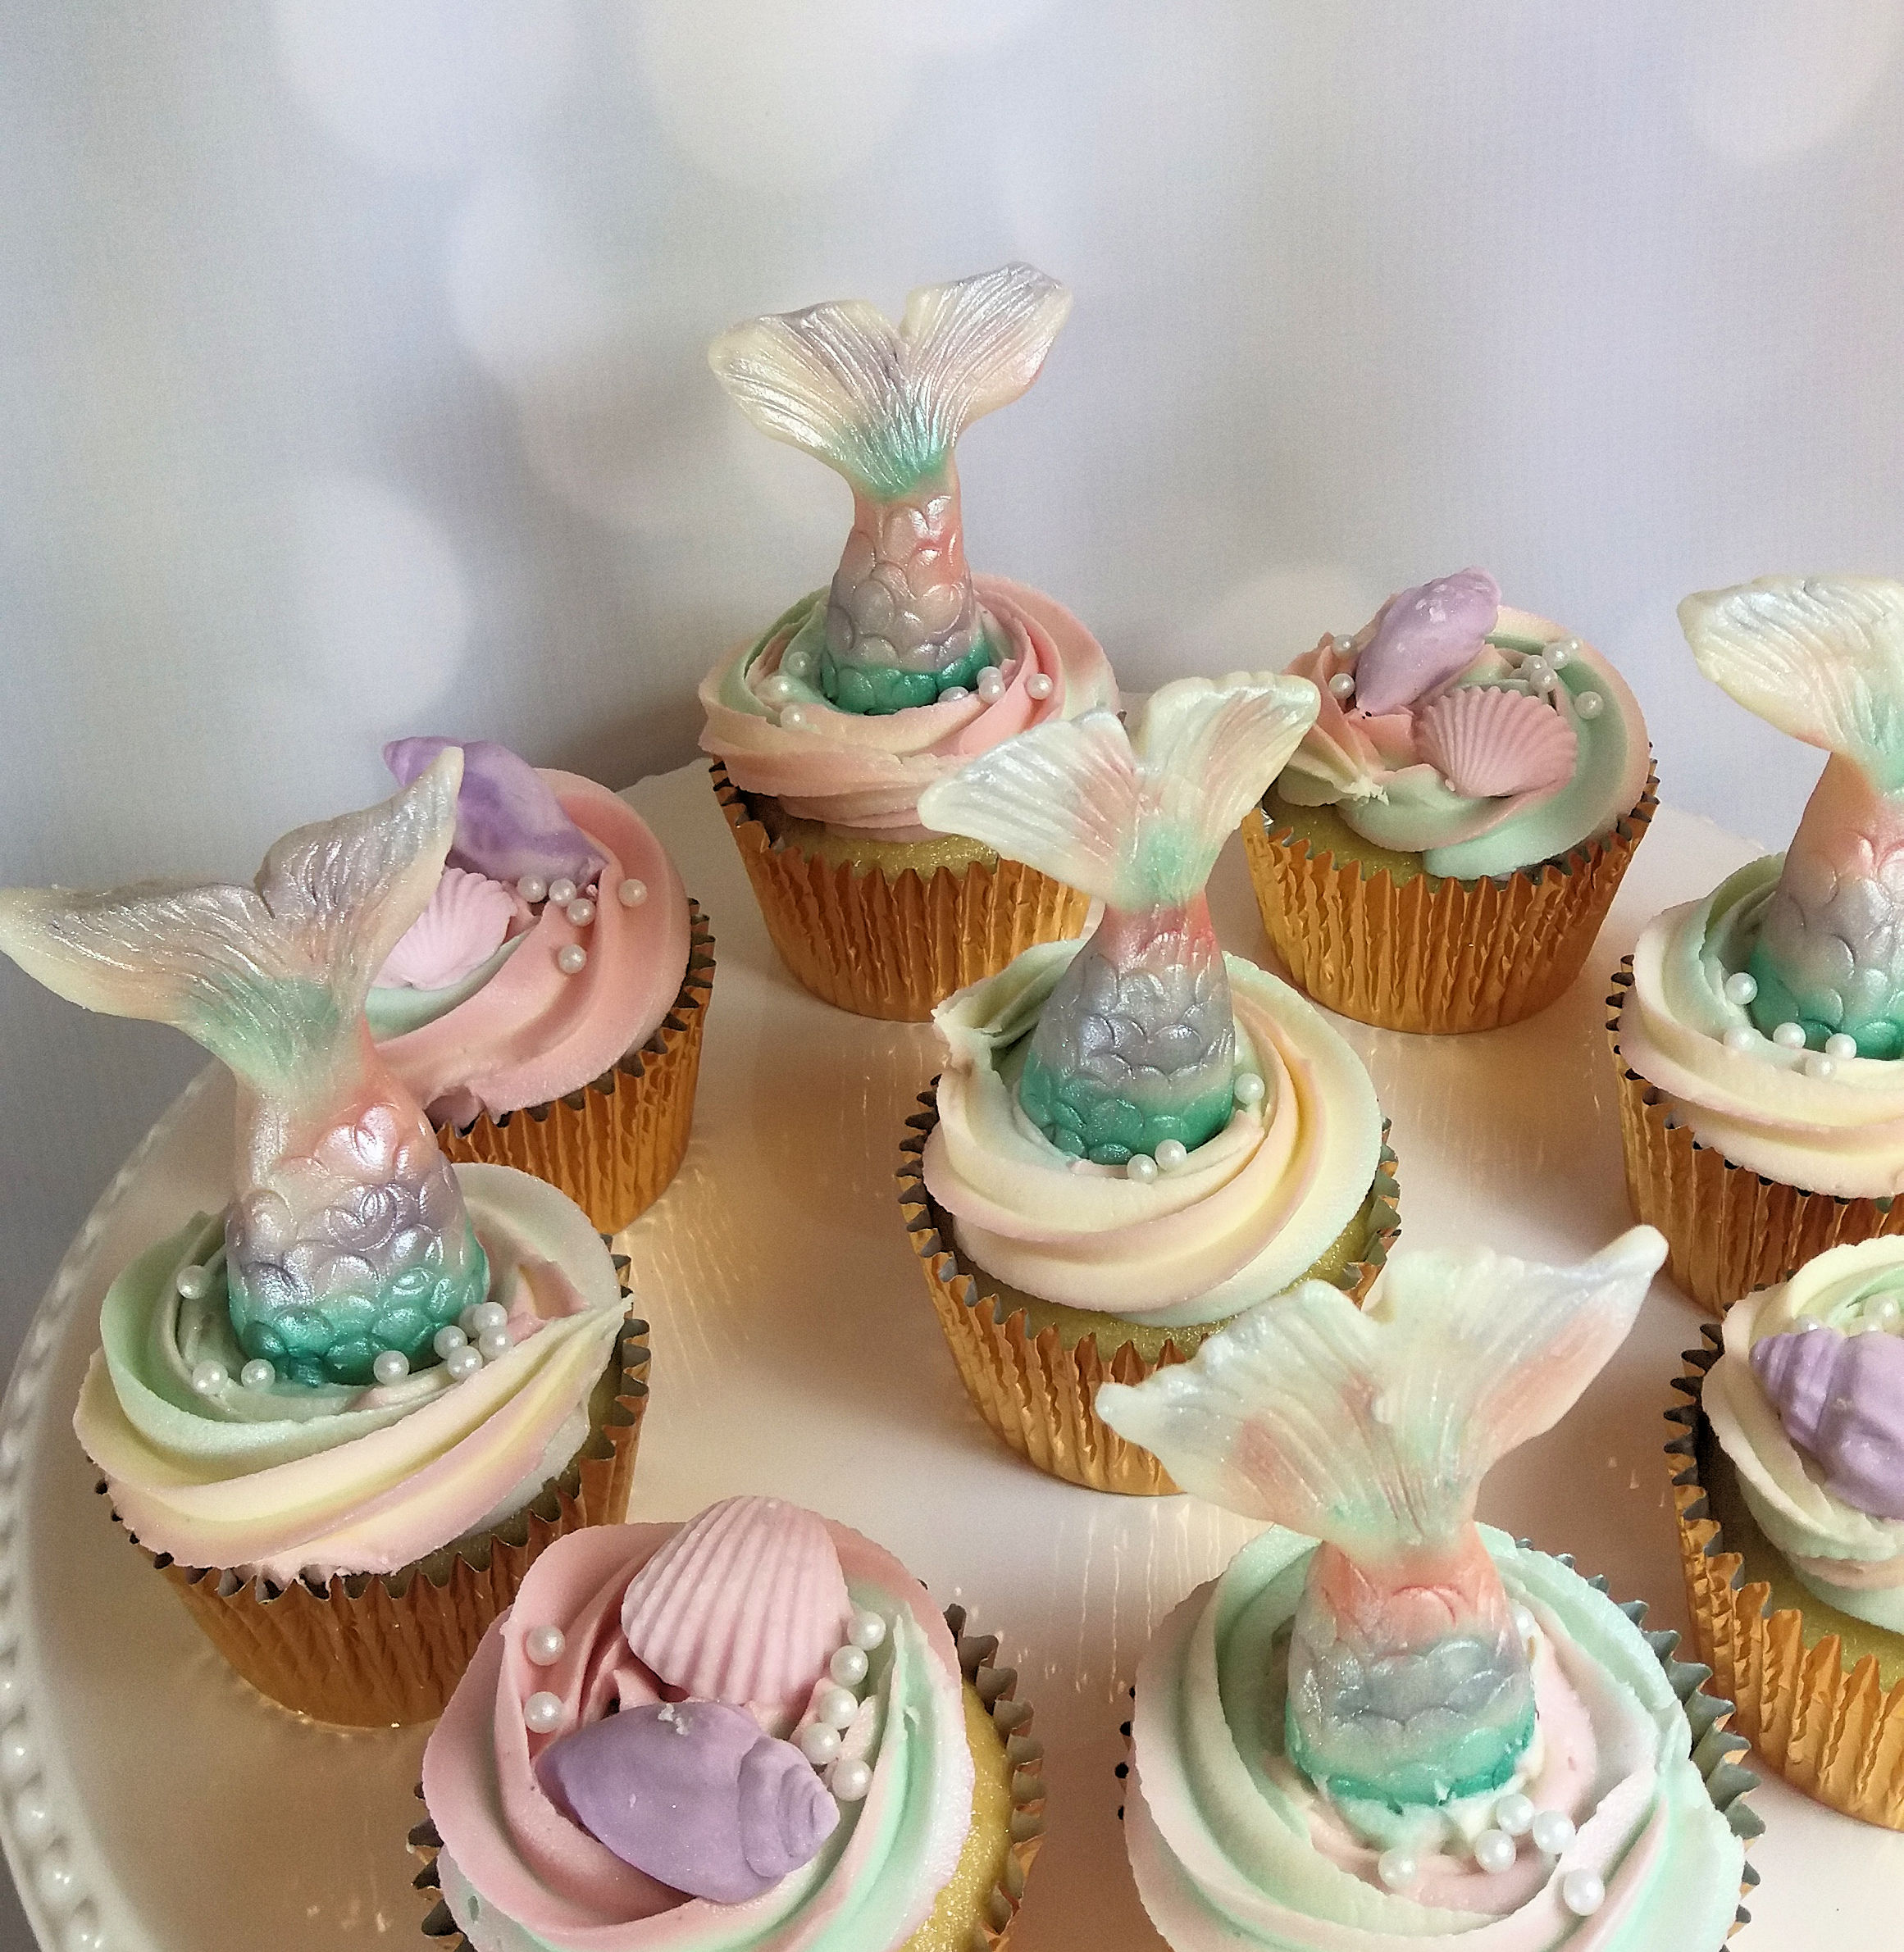 mermaid cupcakes.jpg